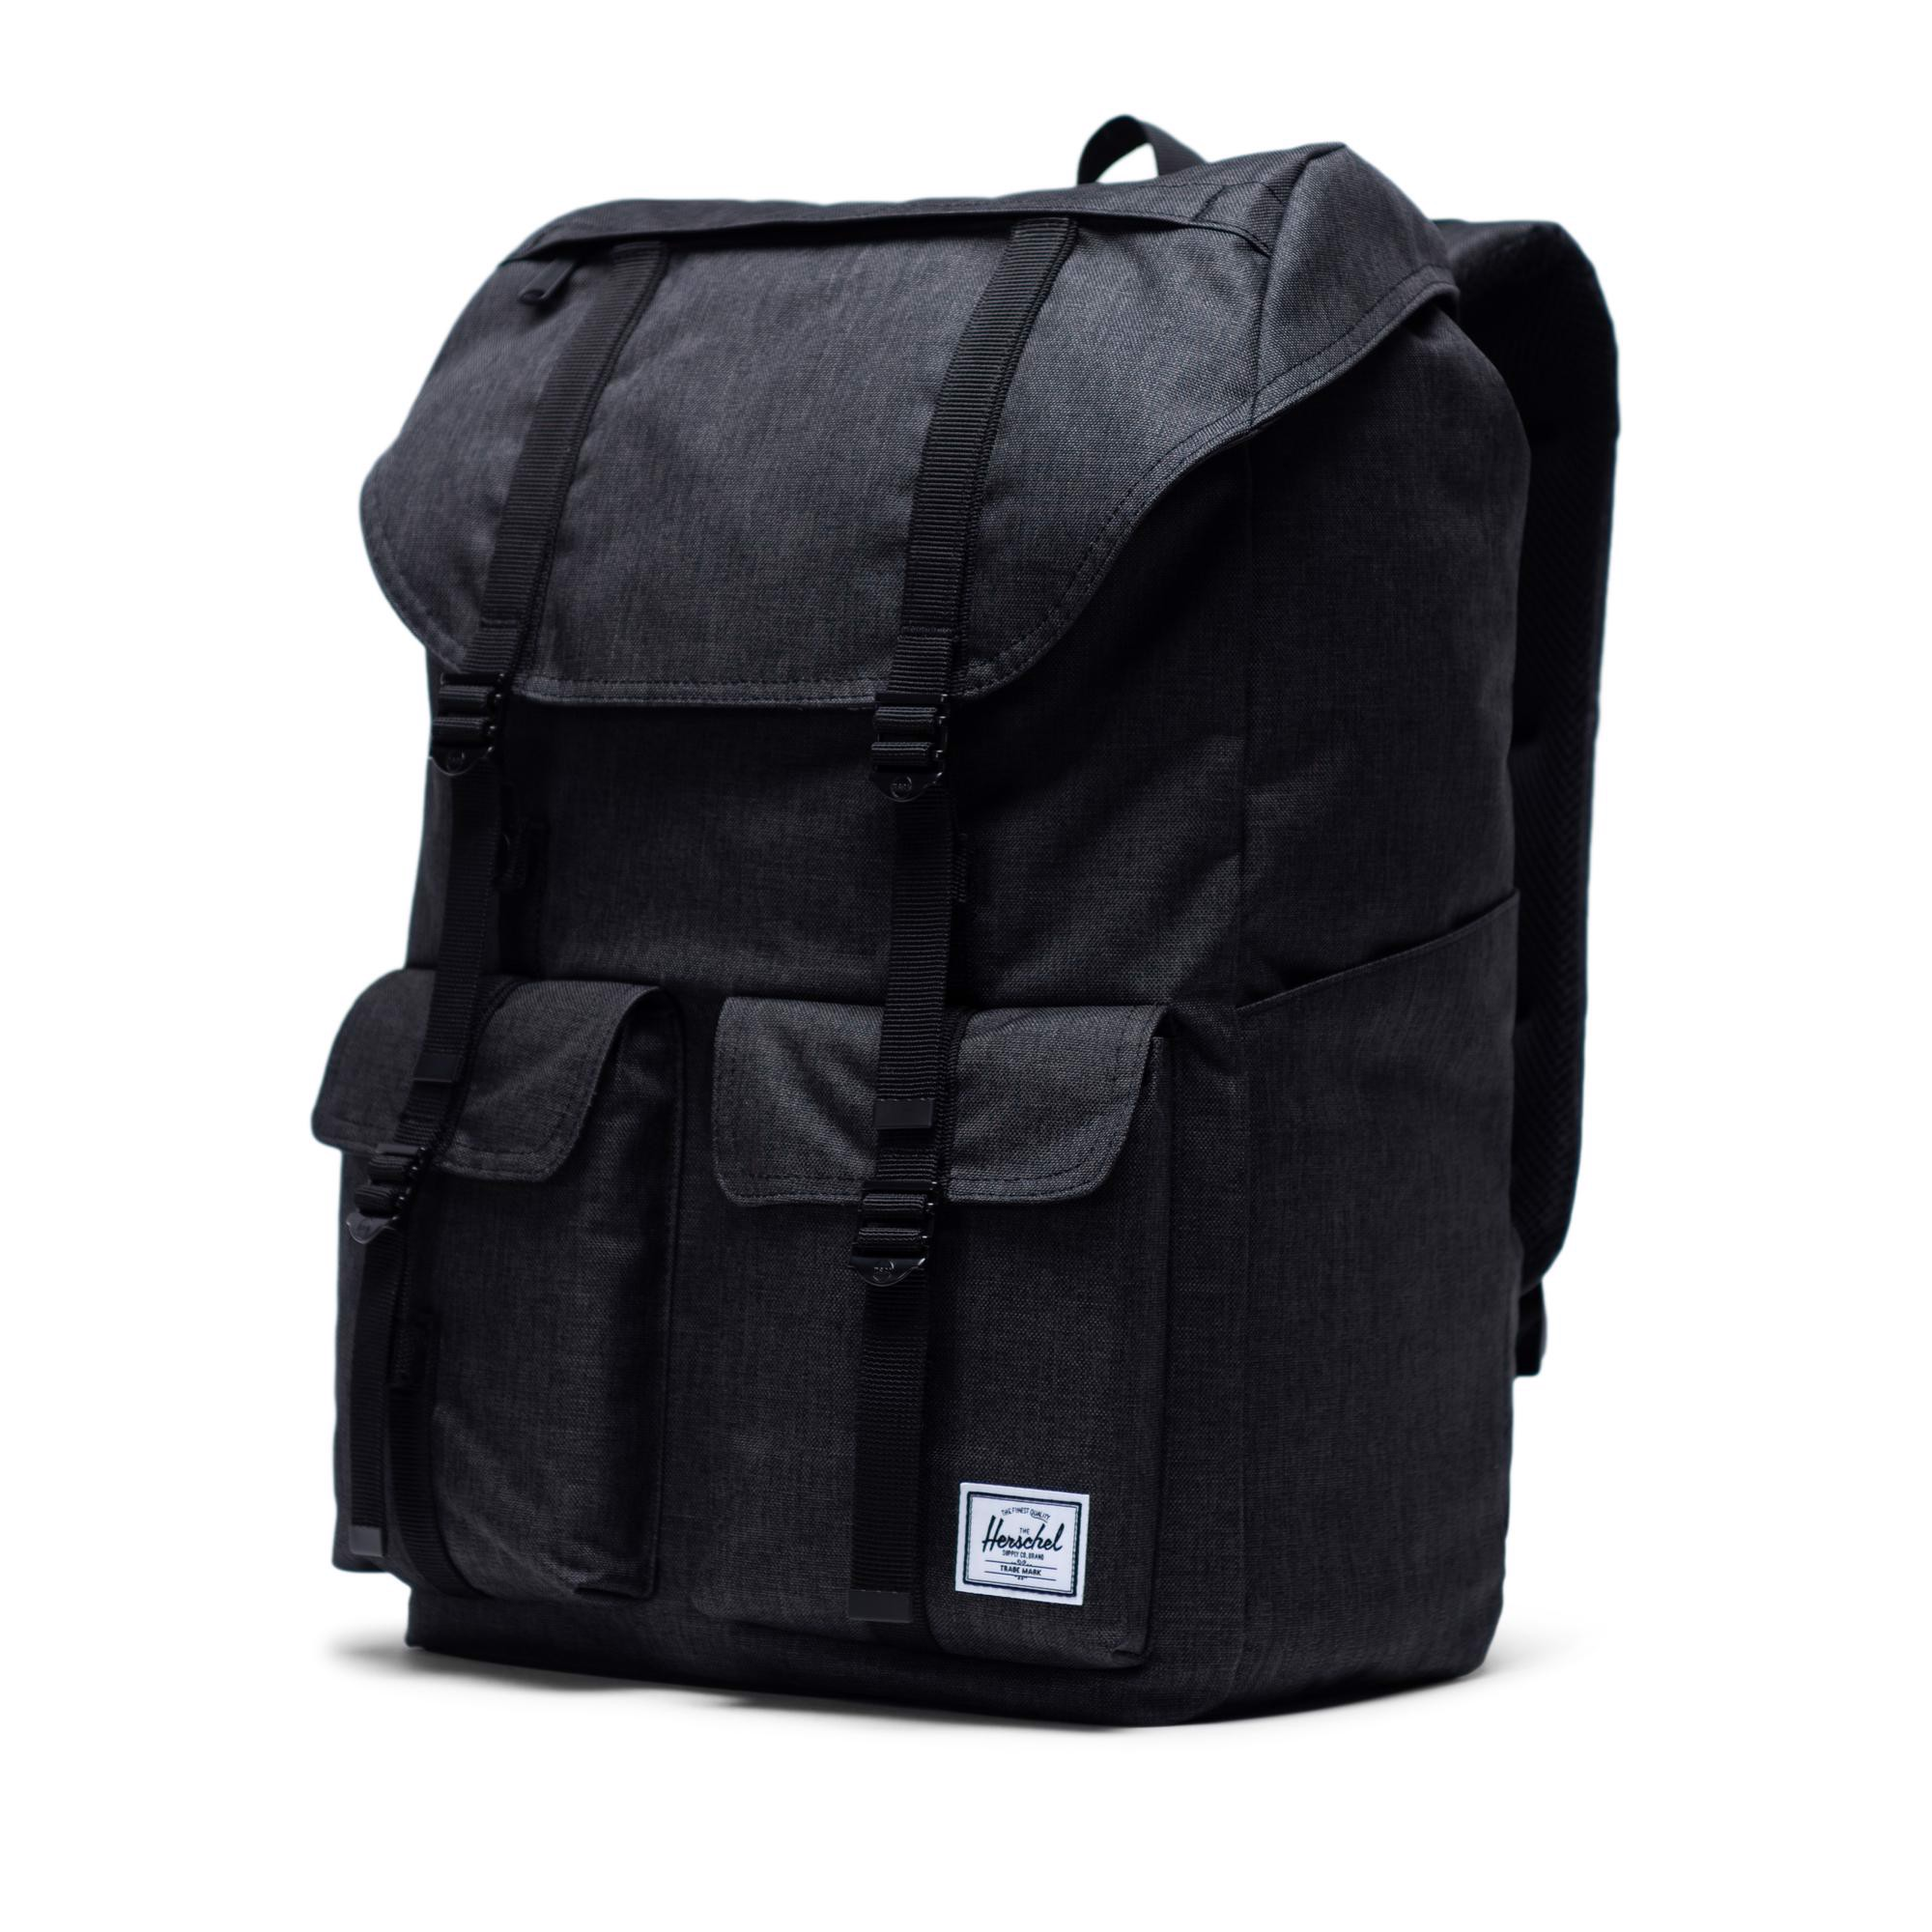 Herschel Buckingham - Black Crosshatch